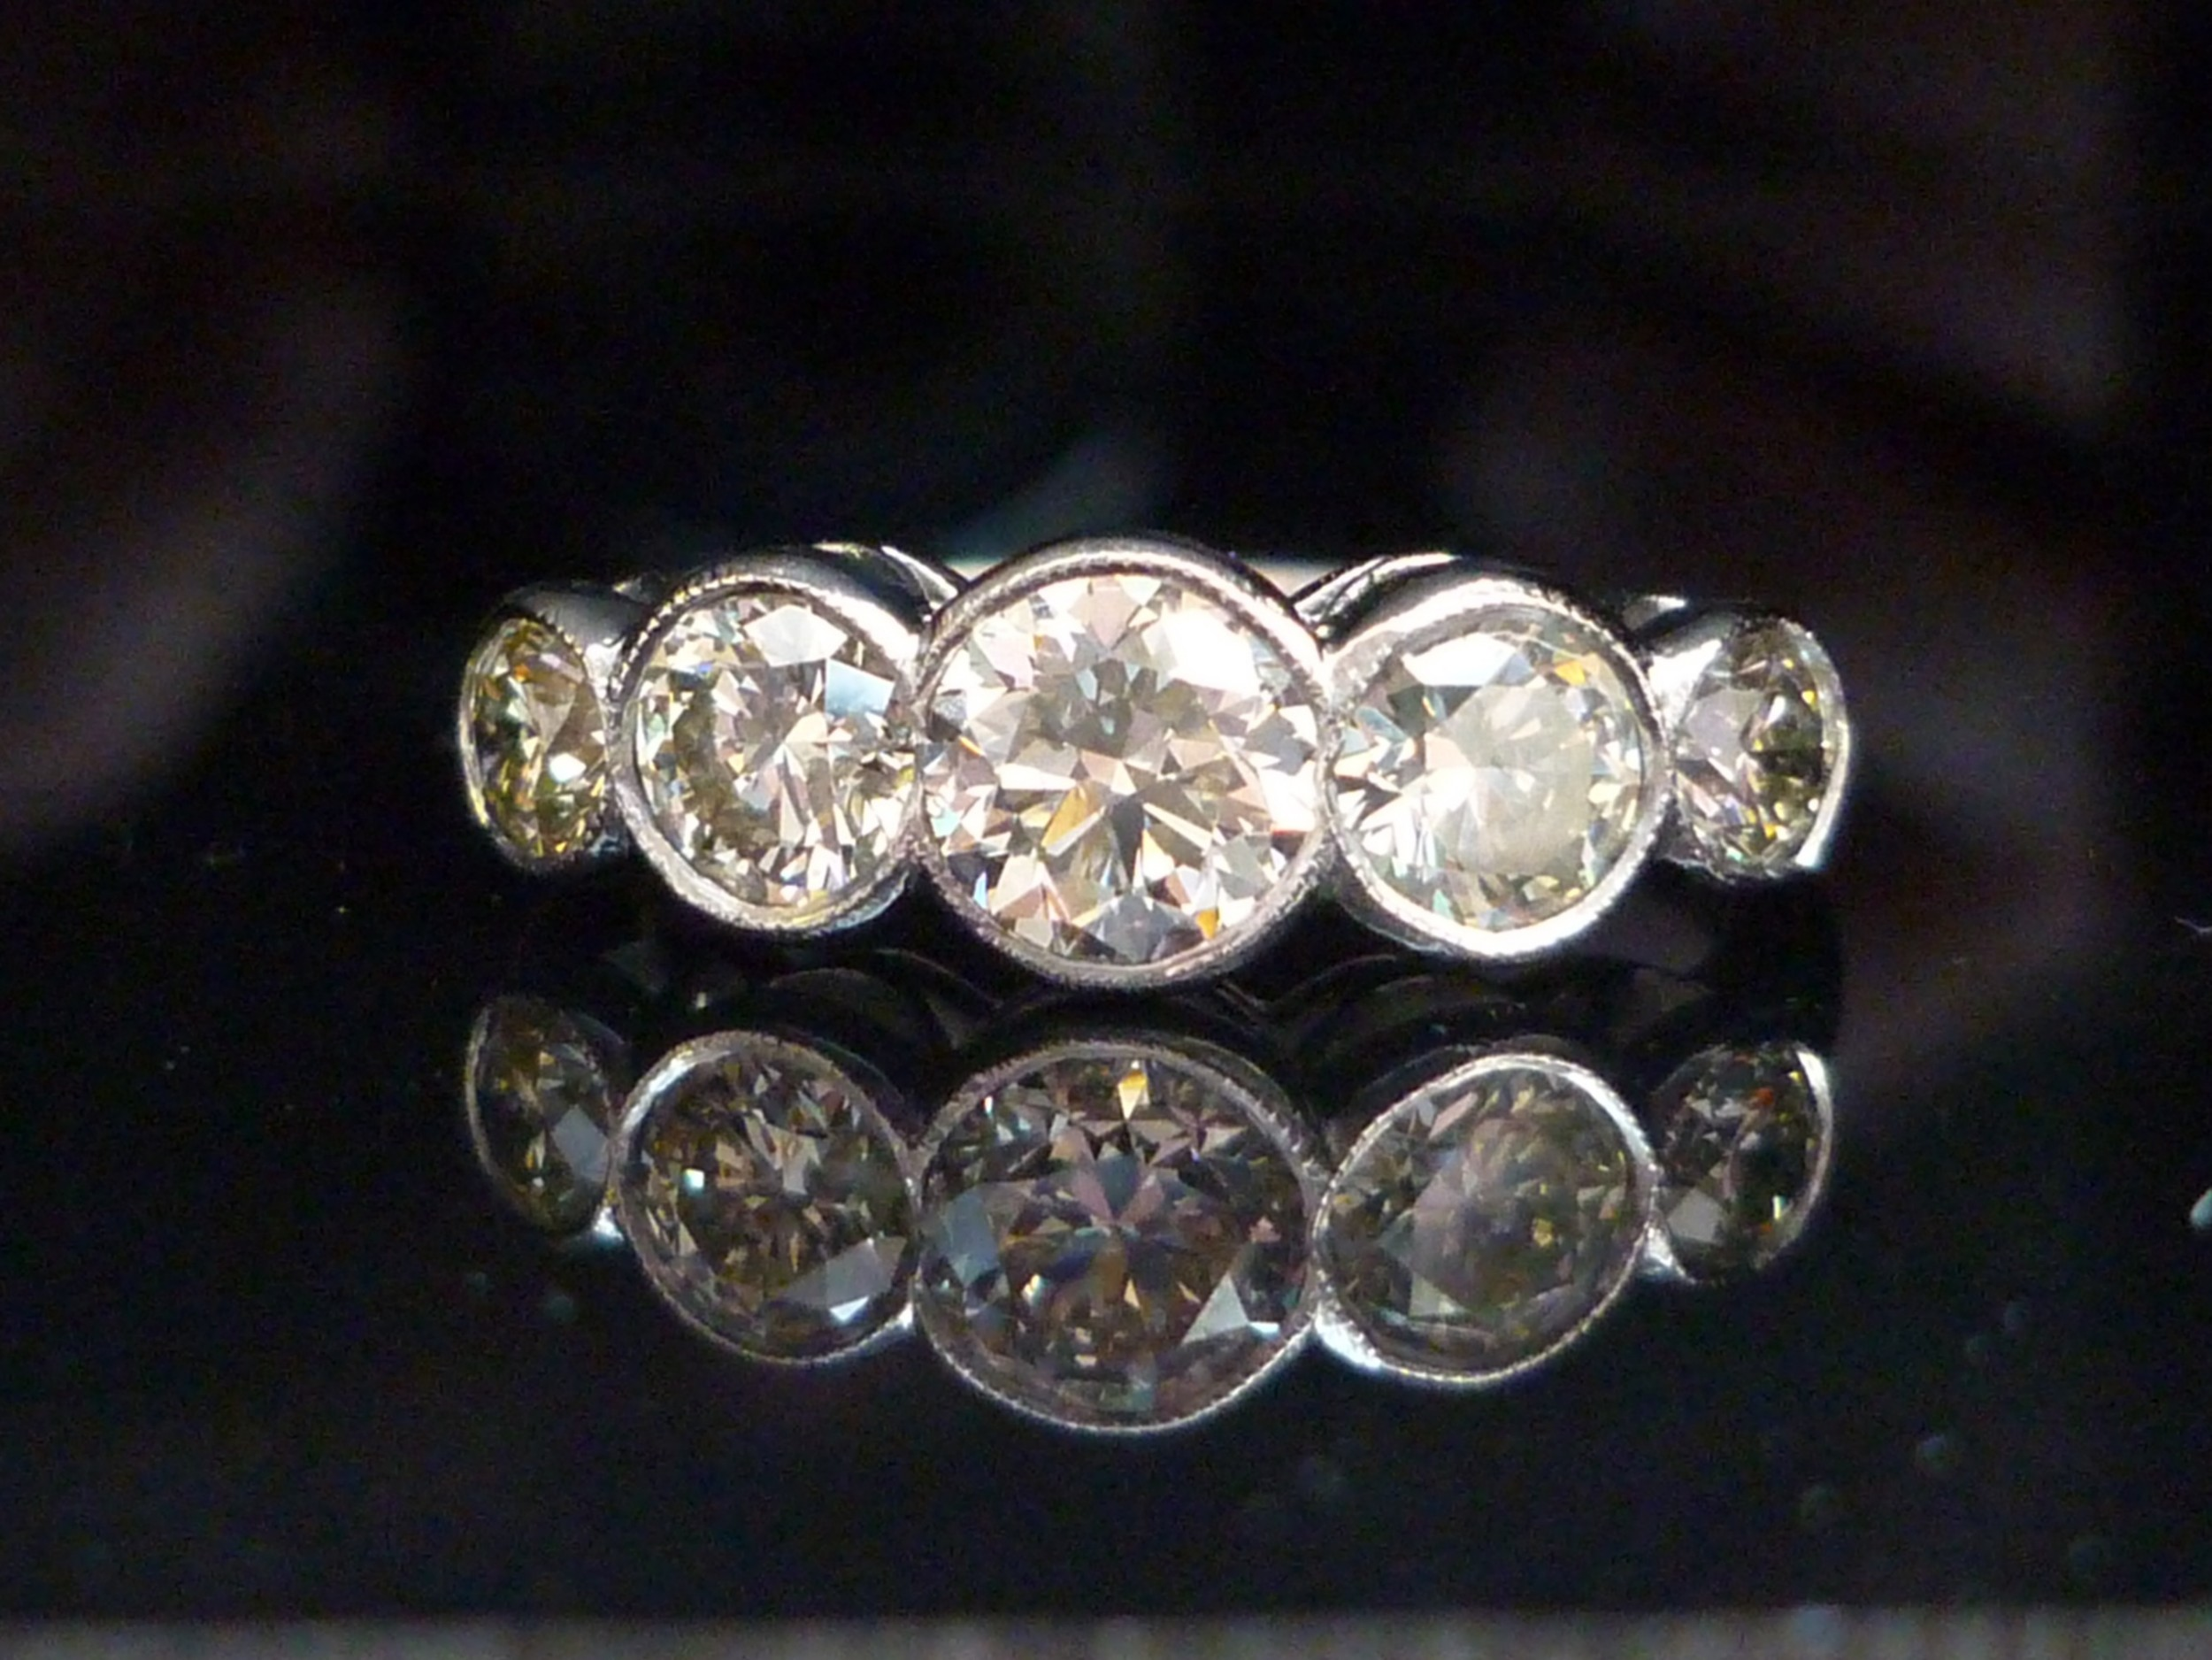 e689a4fa9b726 Stunning Exquisite Platinum 2ct Collet Set Old Transition Cut 5 ...